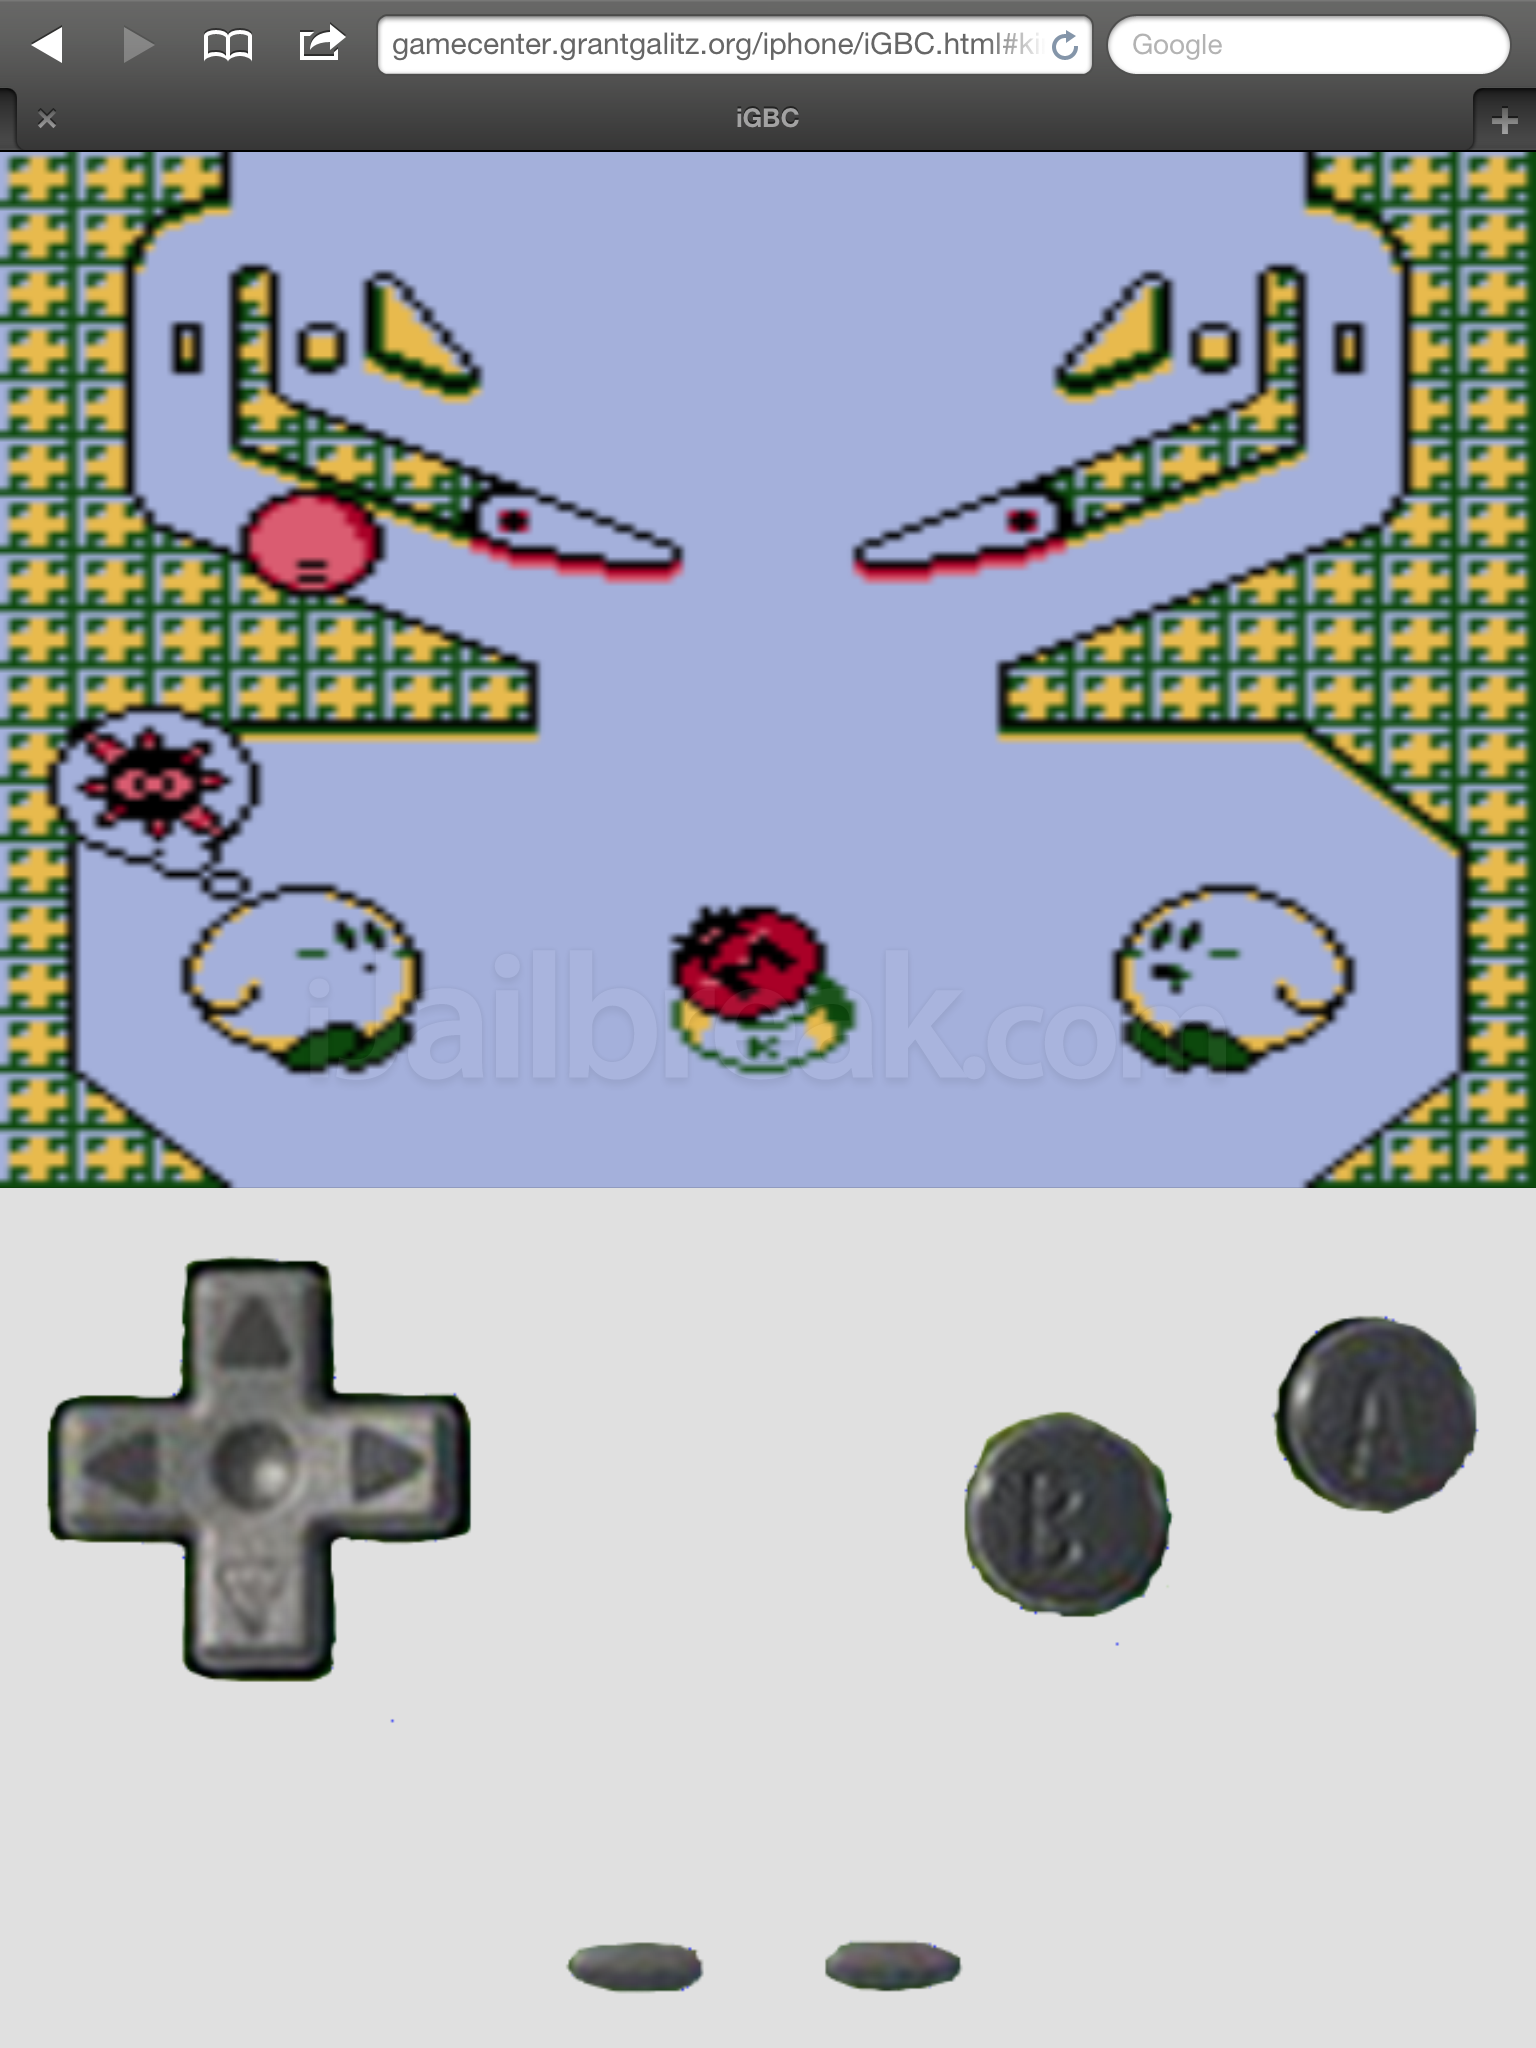 GameBoy-Online: Play Gameboy Games In Your iPhone's Browser